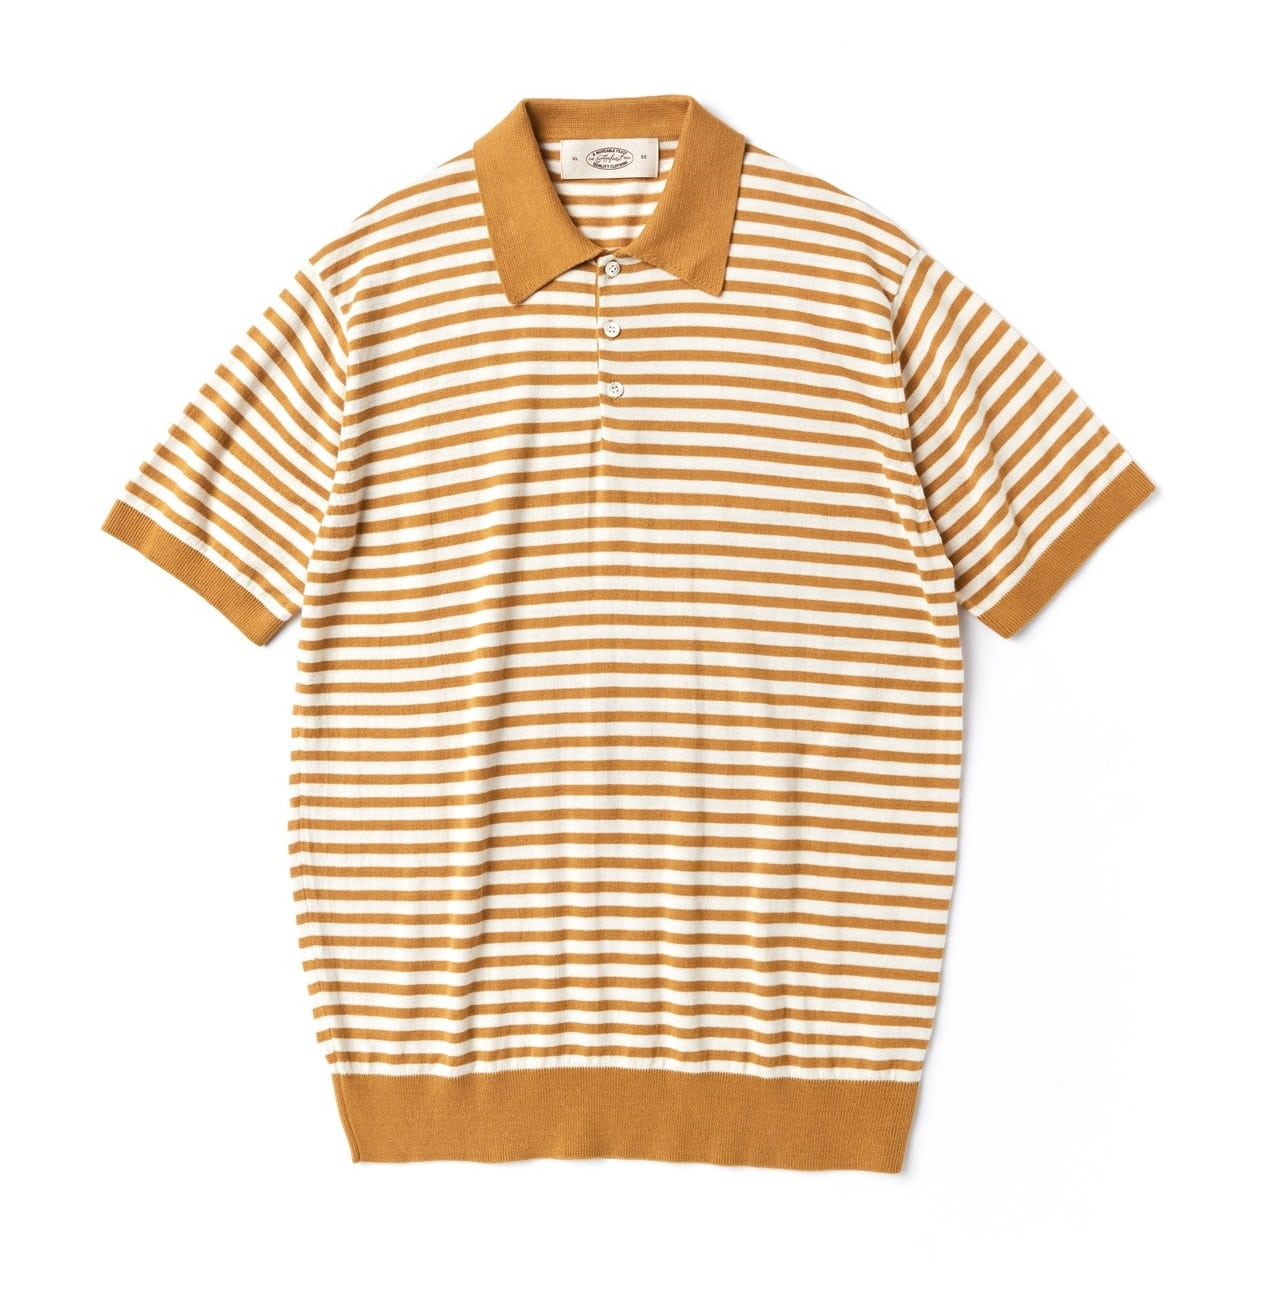 PABLO COLLAR SUMMER KNITWEAR YELLOWAMFEAST(암피스트)